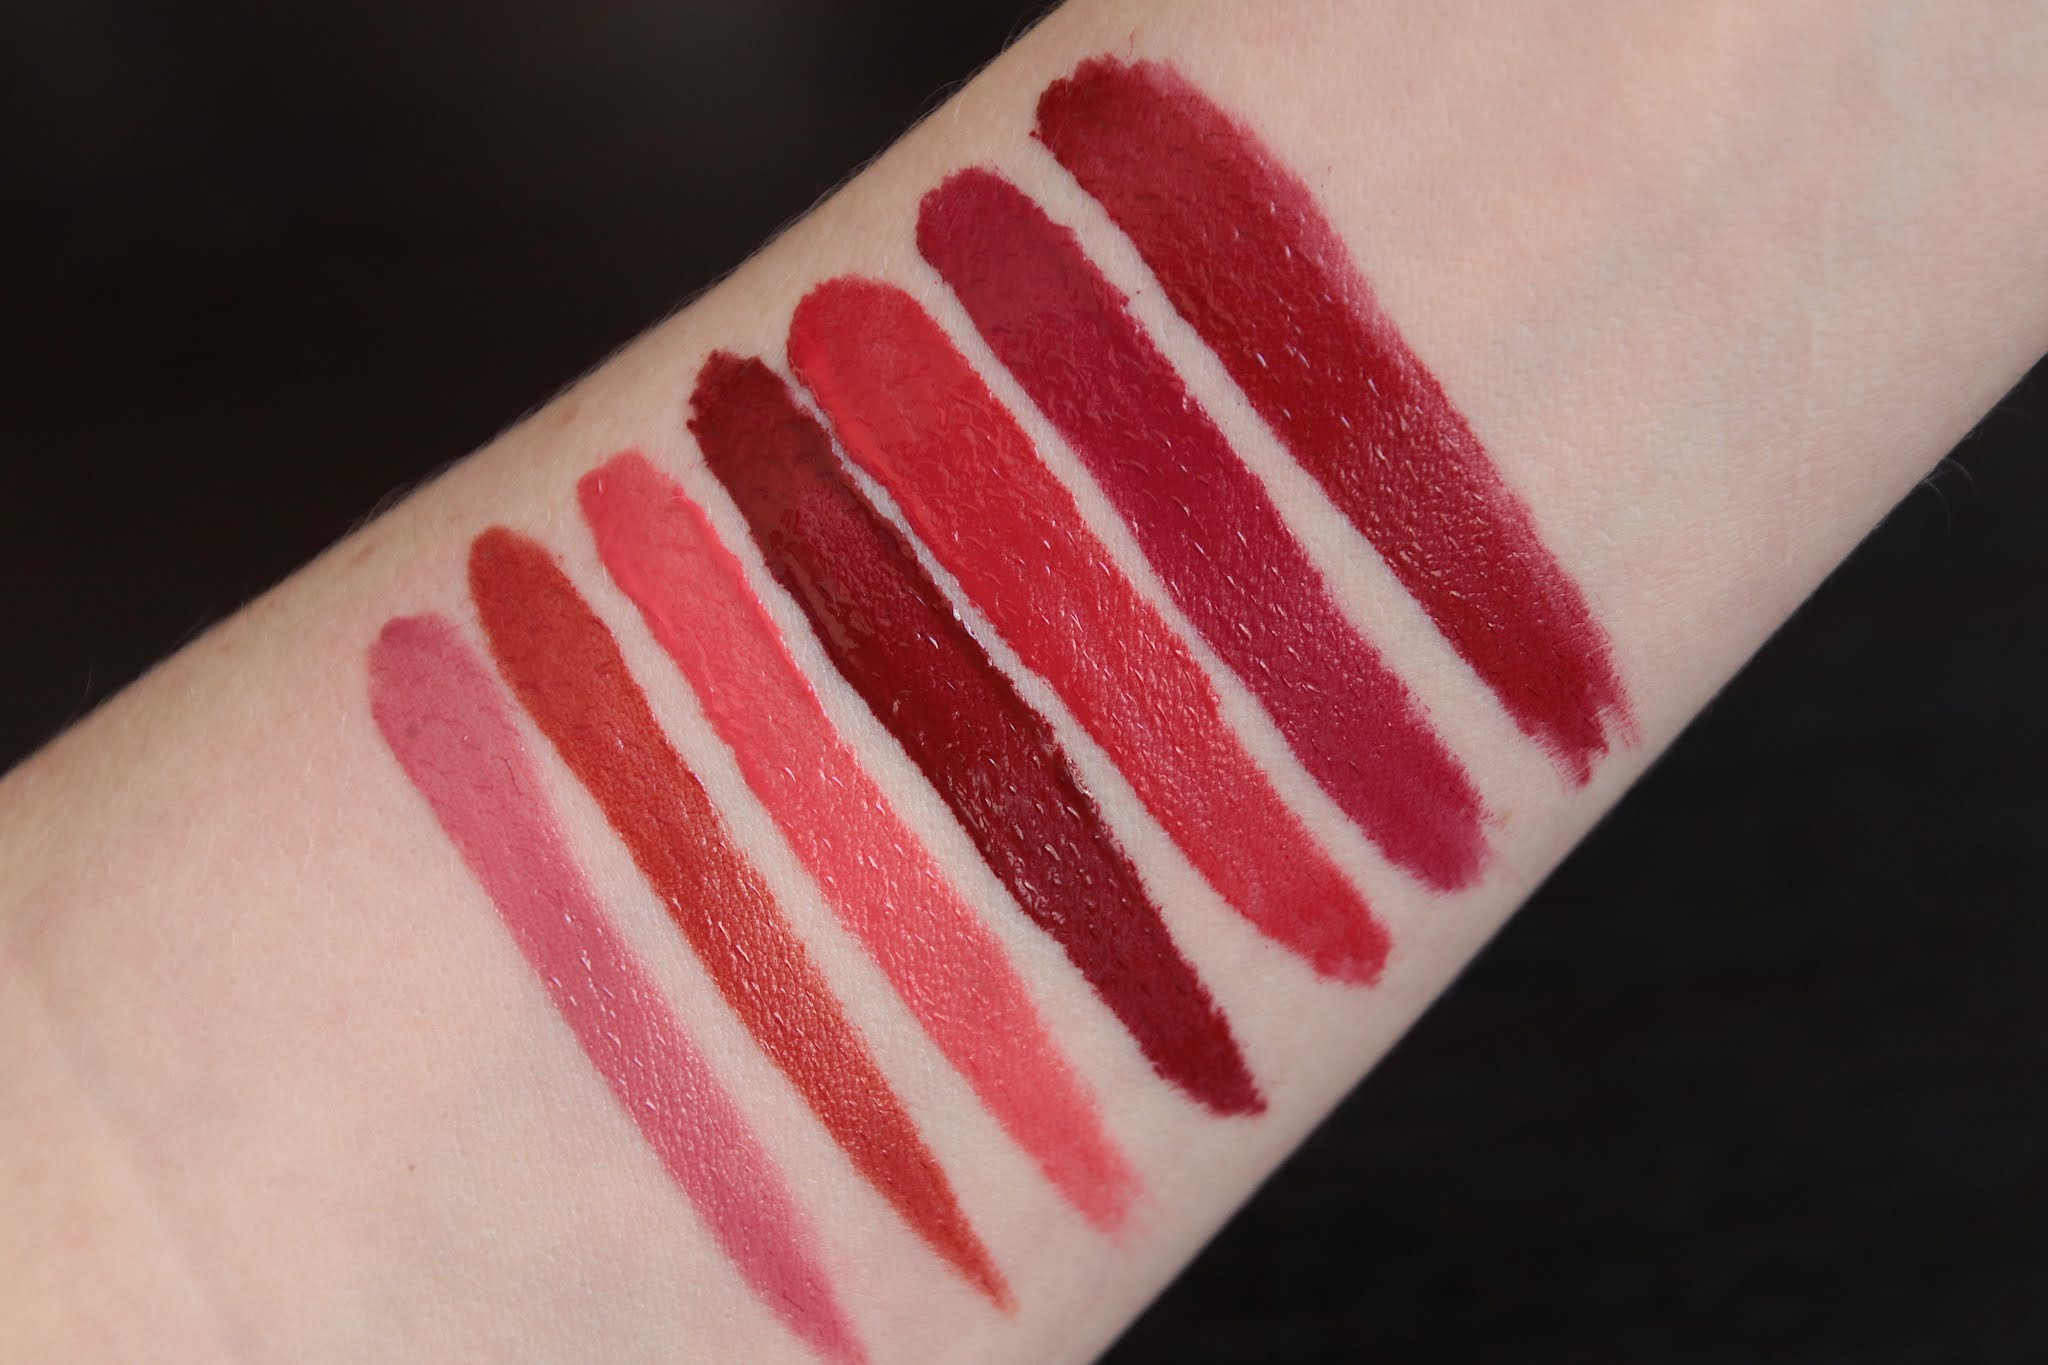 258-my-kiss-glow-219-eternal-rose-509-wild-kiss-520-love-bloom-521-kiss-to-say-775-poppy-kiss-809-flower-fever-819-corolla-rouge